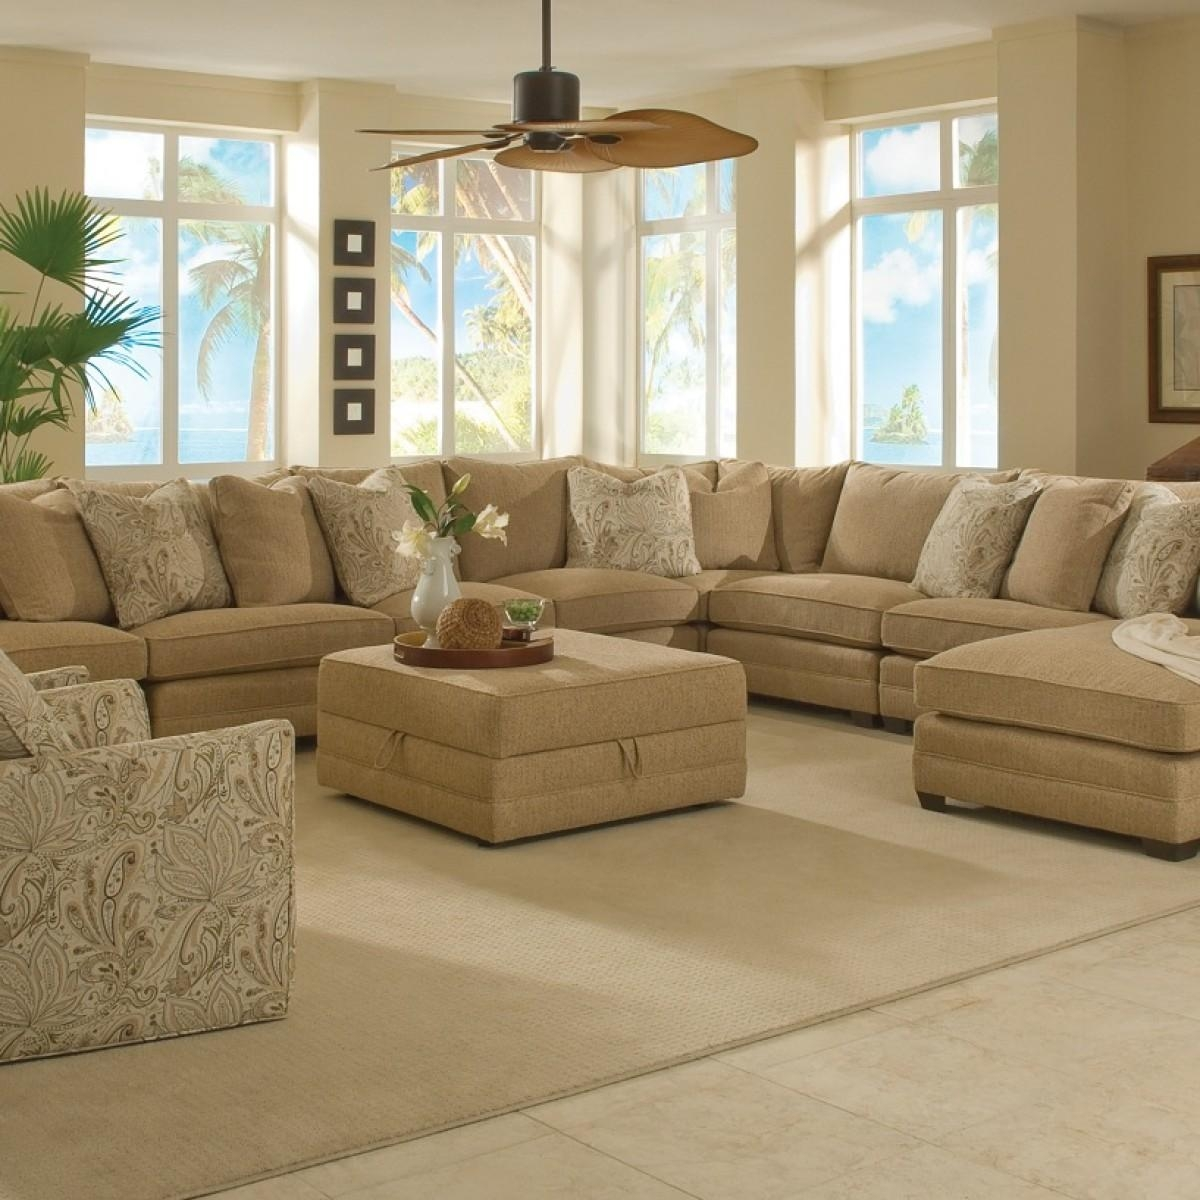 Furniture: Nice Extra Large Sectional Sofa For Large Living Room Inside Large Sofa Sectionals (View 2 of 20)